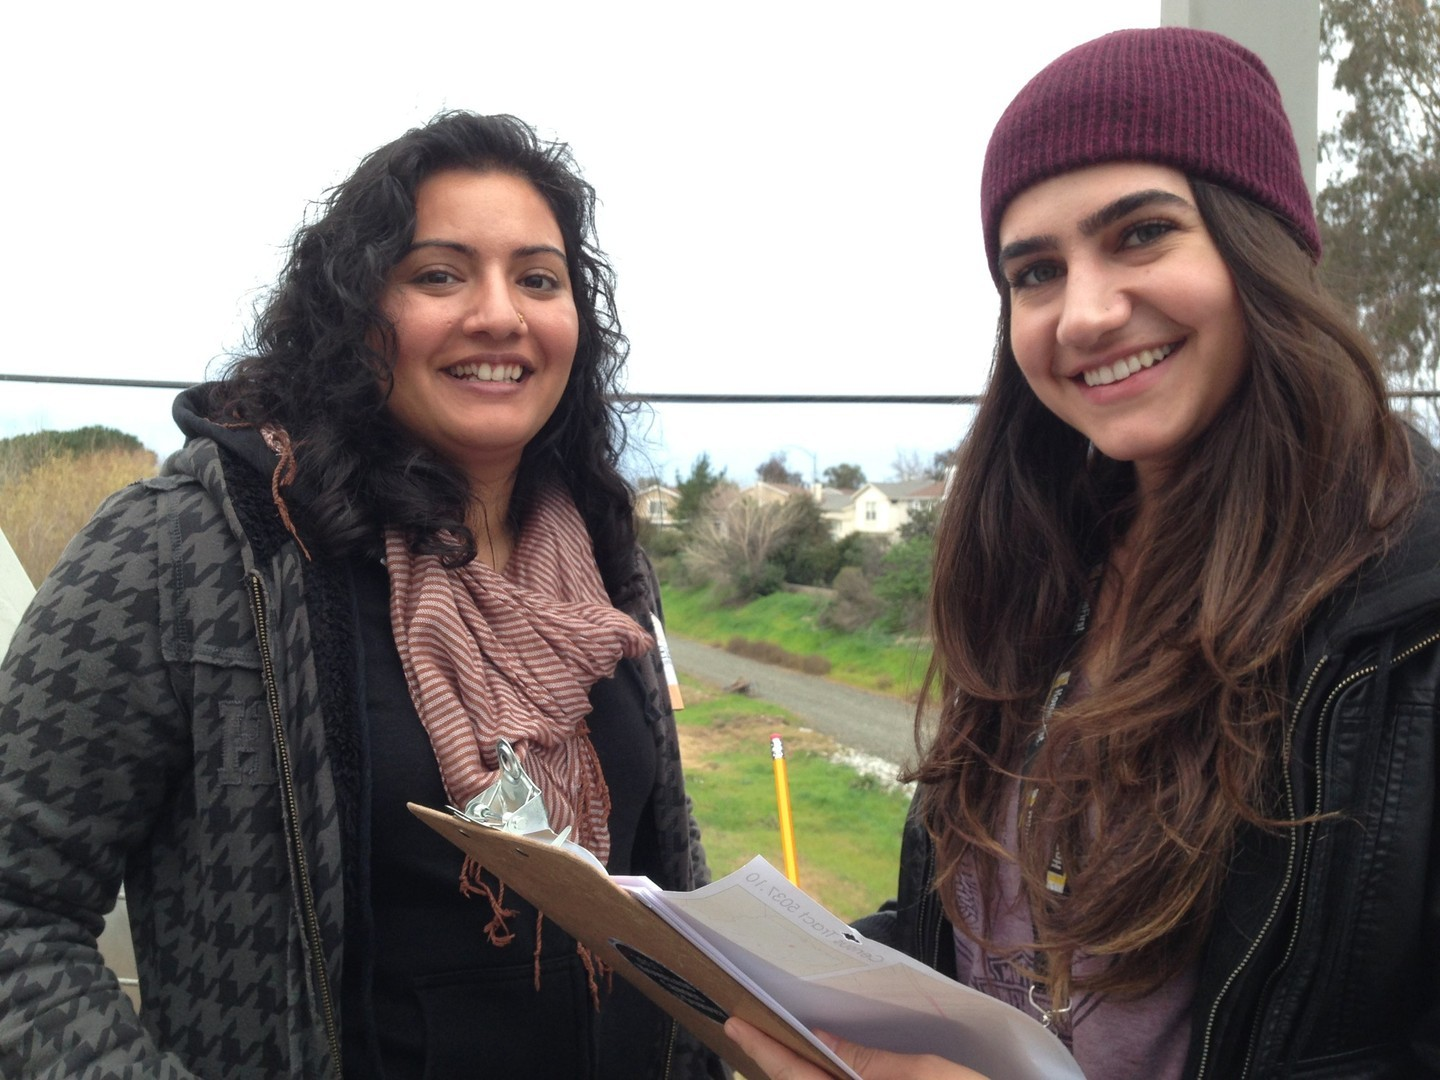 Social workers Jen Sandhu and Pauline Bayati of HomeFirst, a nonprofit that helps homeless people in Santa Clara County. They volunteered to help count the homeless in San Jose.